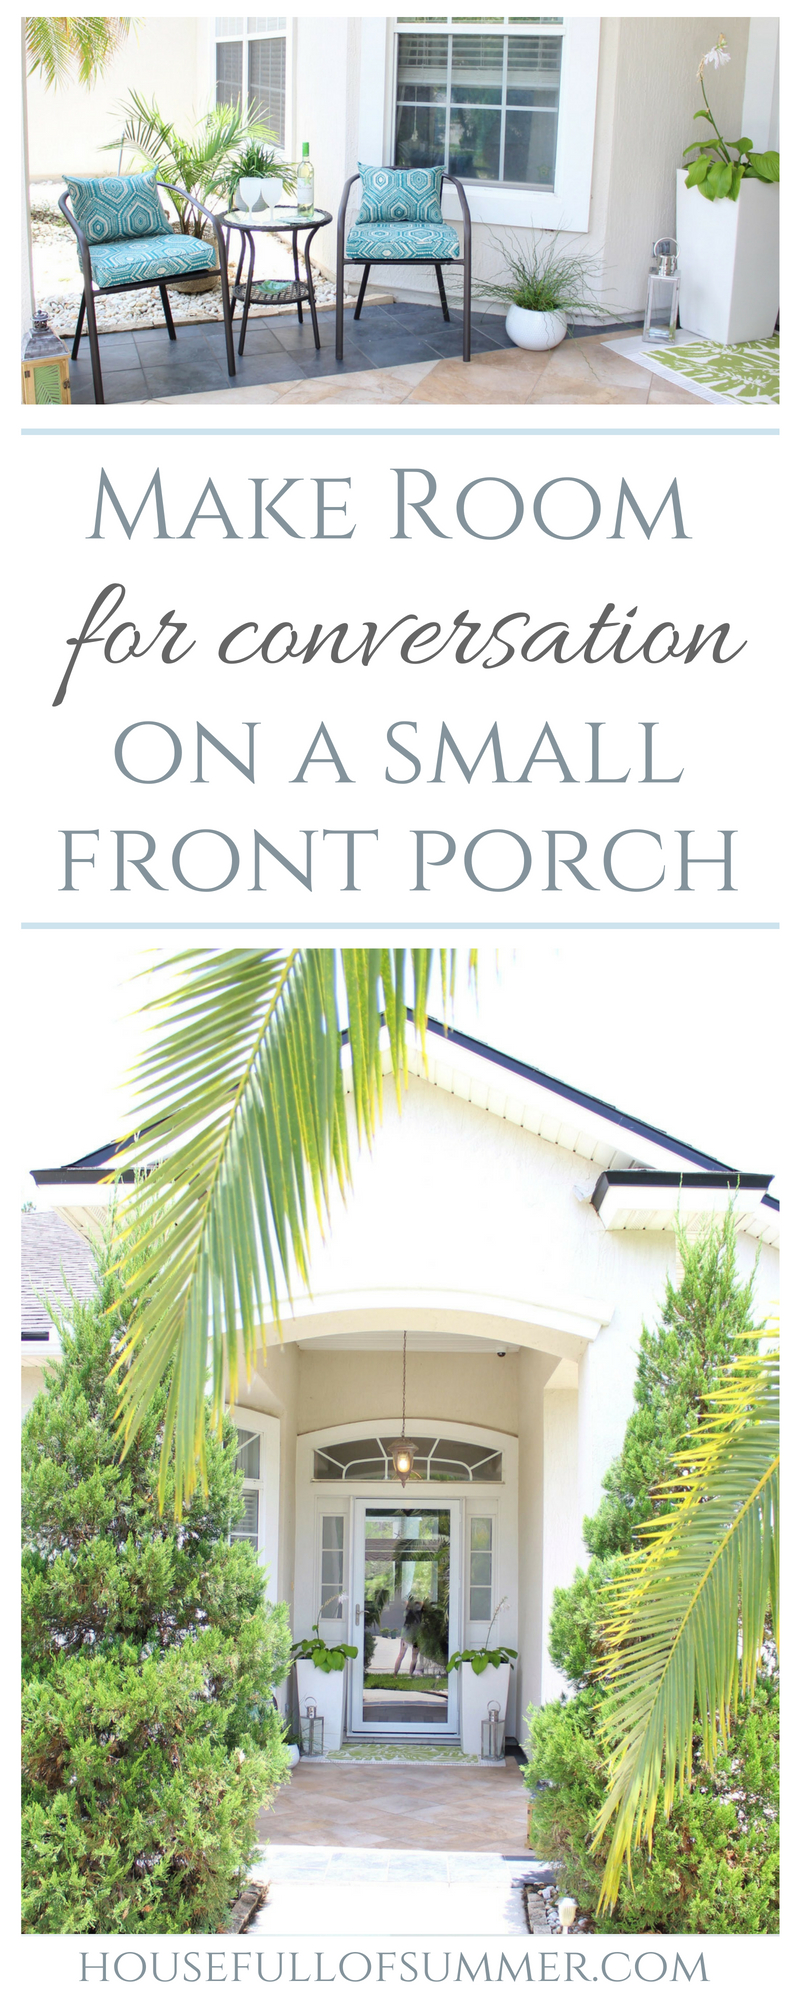 Make Room for Conversation on a Small Front Porch | House Full of Summer collaboration with andThat! Jacksonville - coastal home decor, tropical front porch, blue and green, patio furniture, bistro set